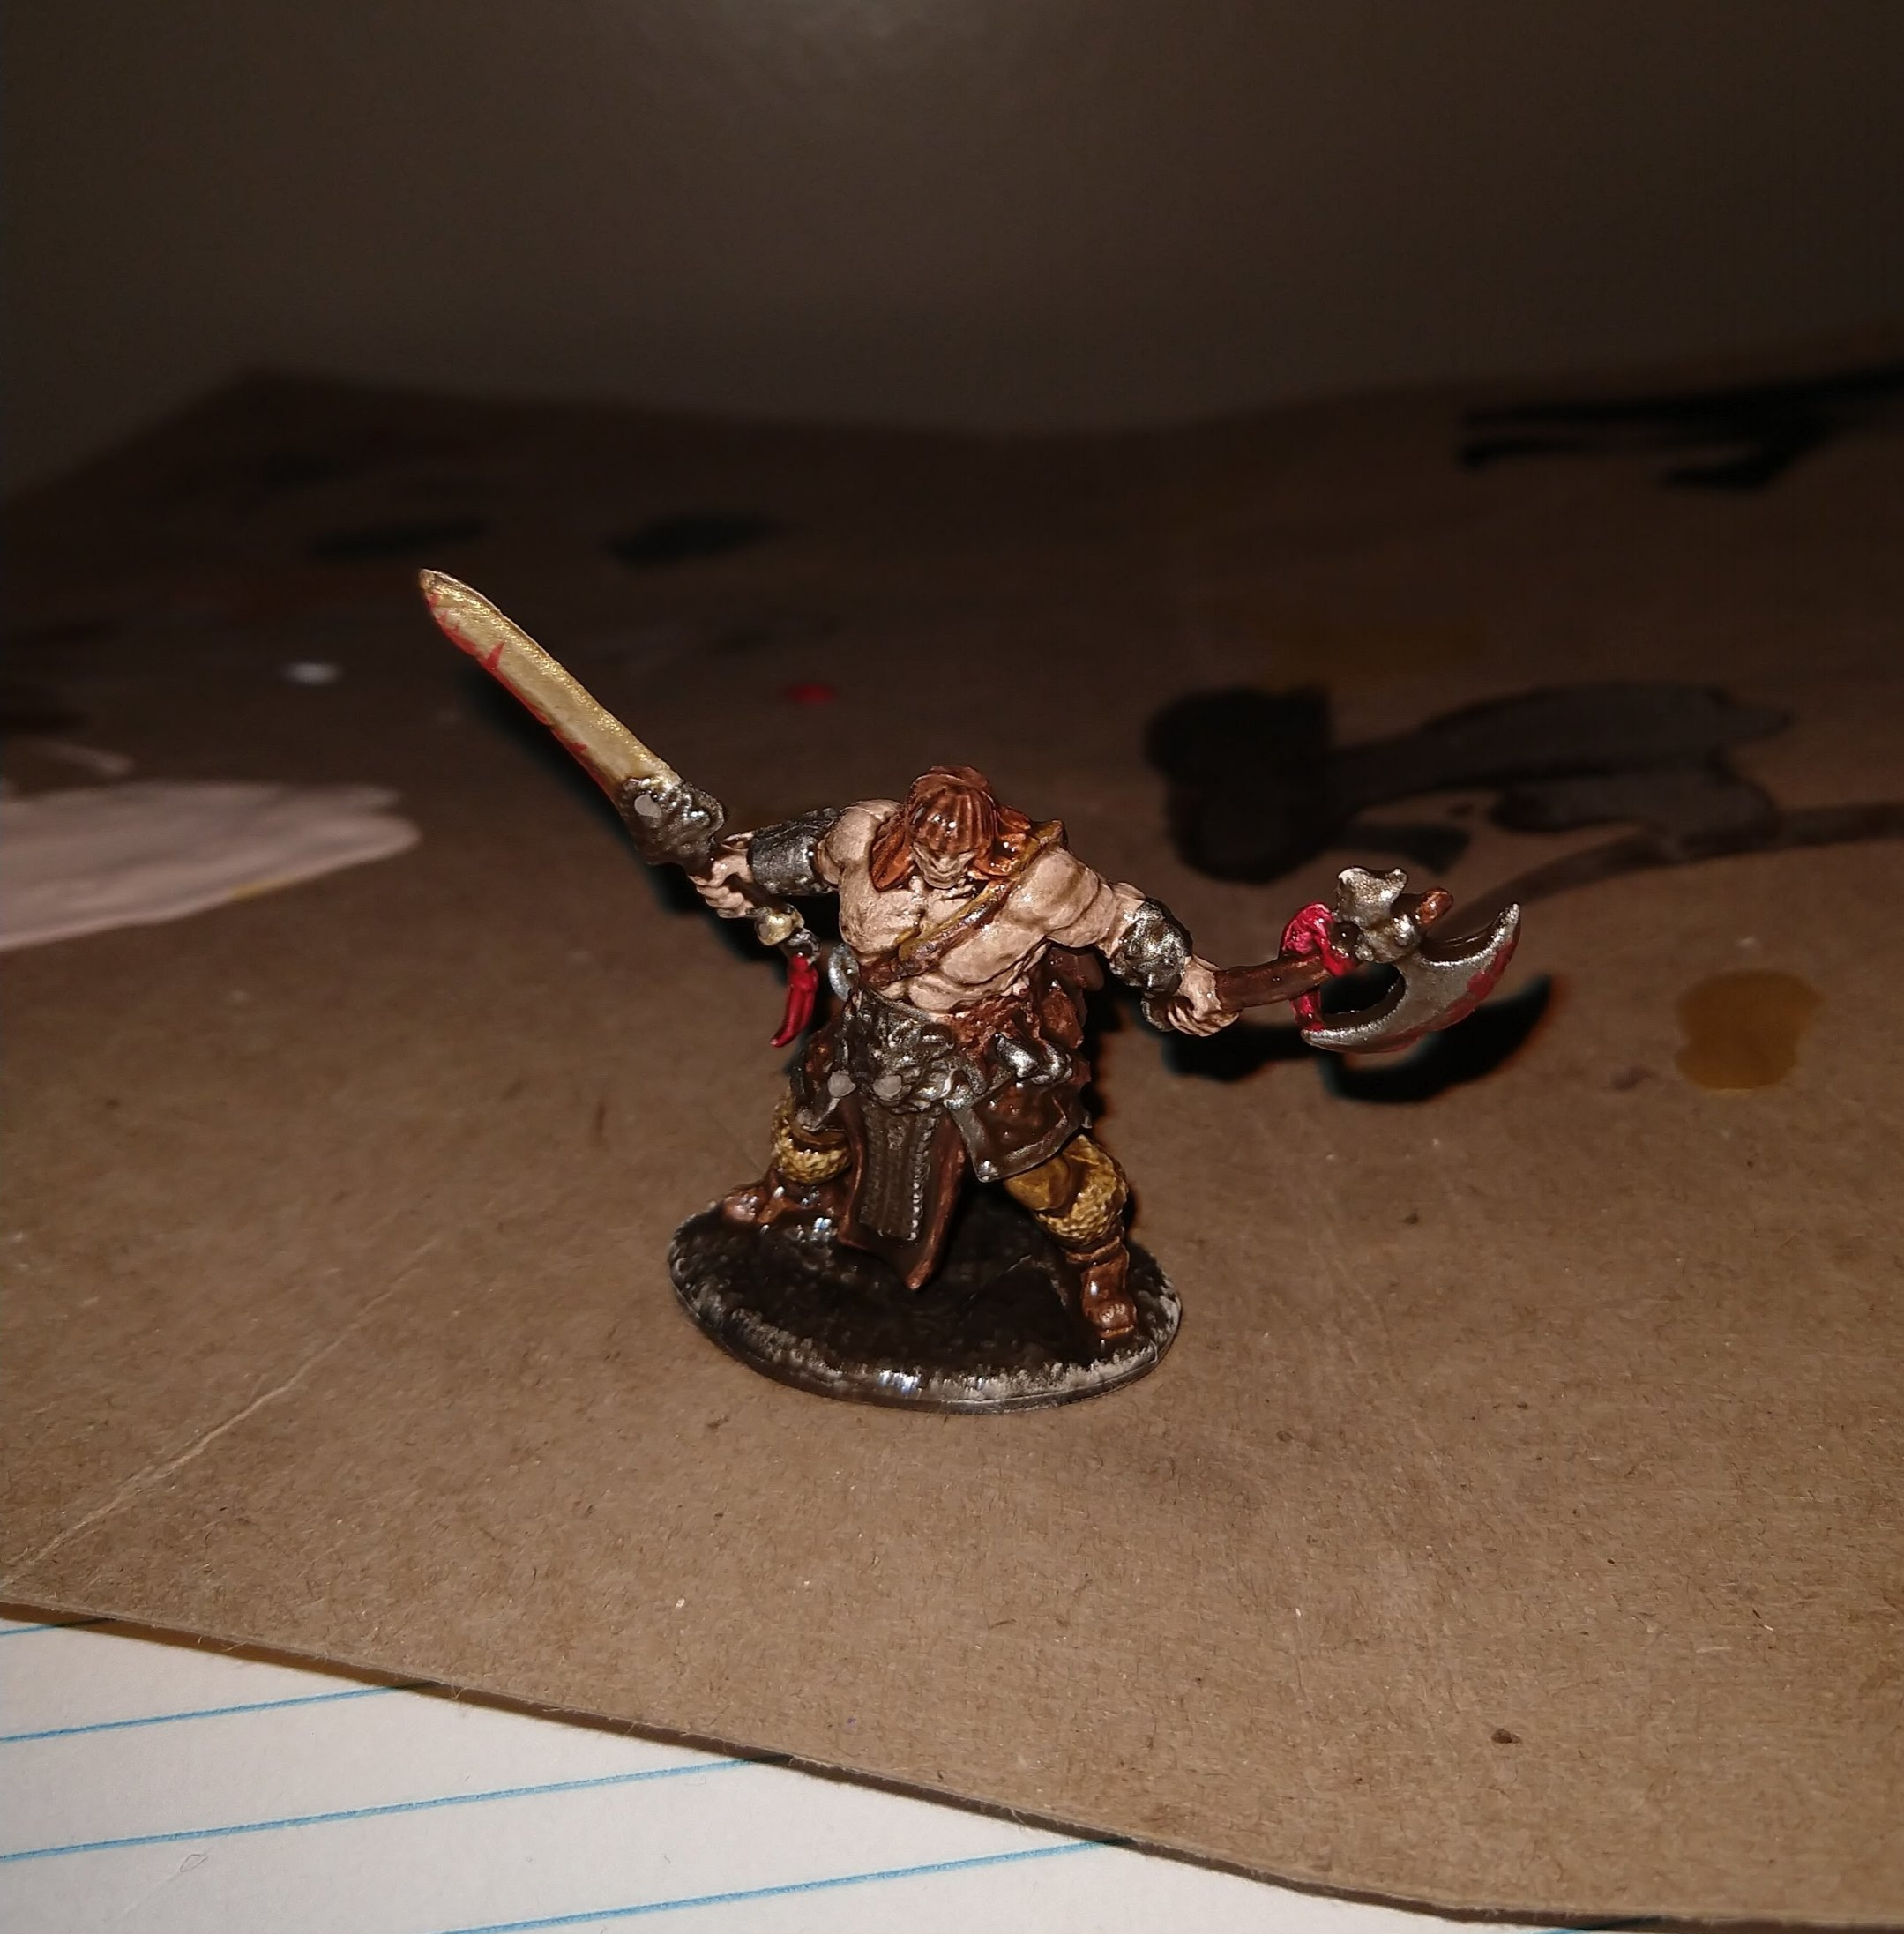 Zorn before adding a clear coat looking extra shiny even in low light.